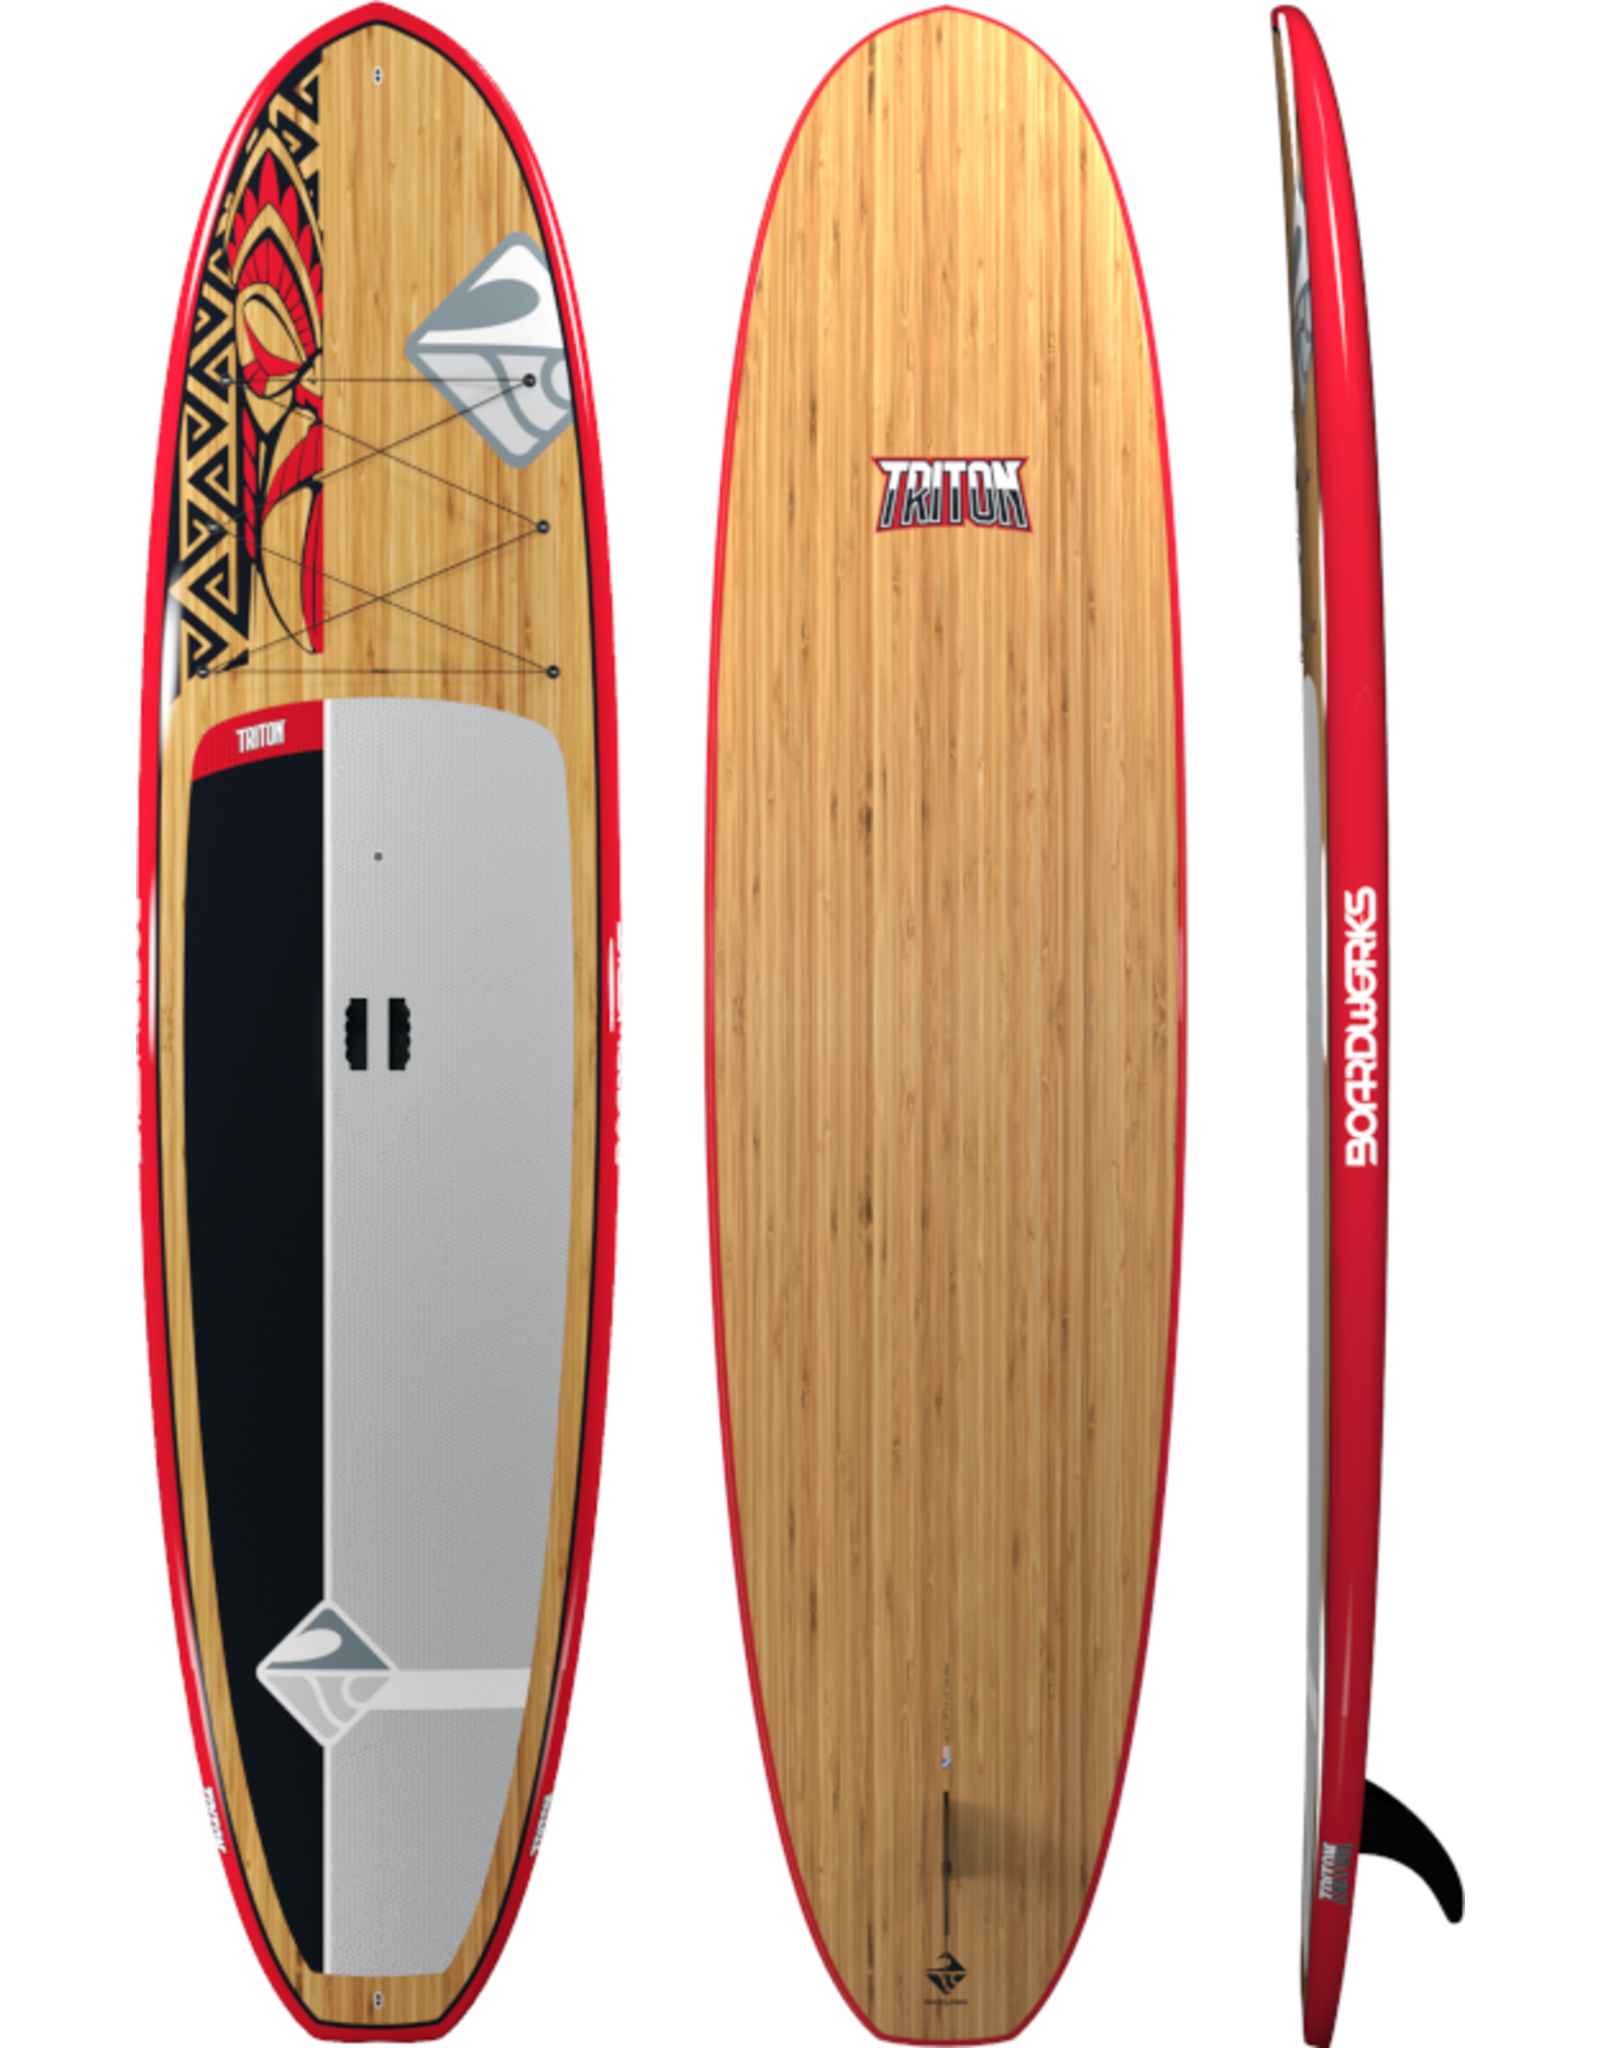 """Boardworks Boardworks Triton 10'6"""" SUP (Stand Up Paddleboard) - Red/Bamboo"""